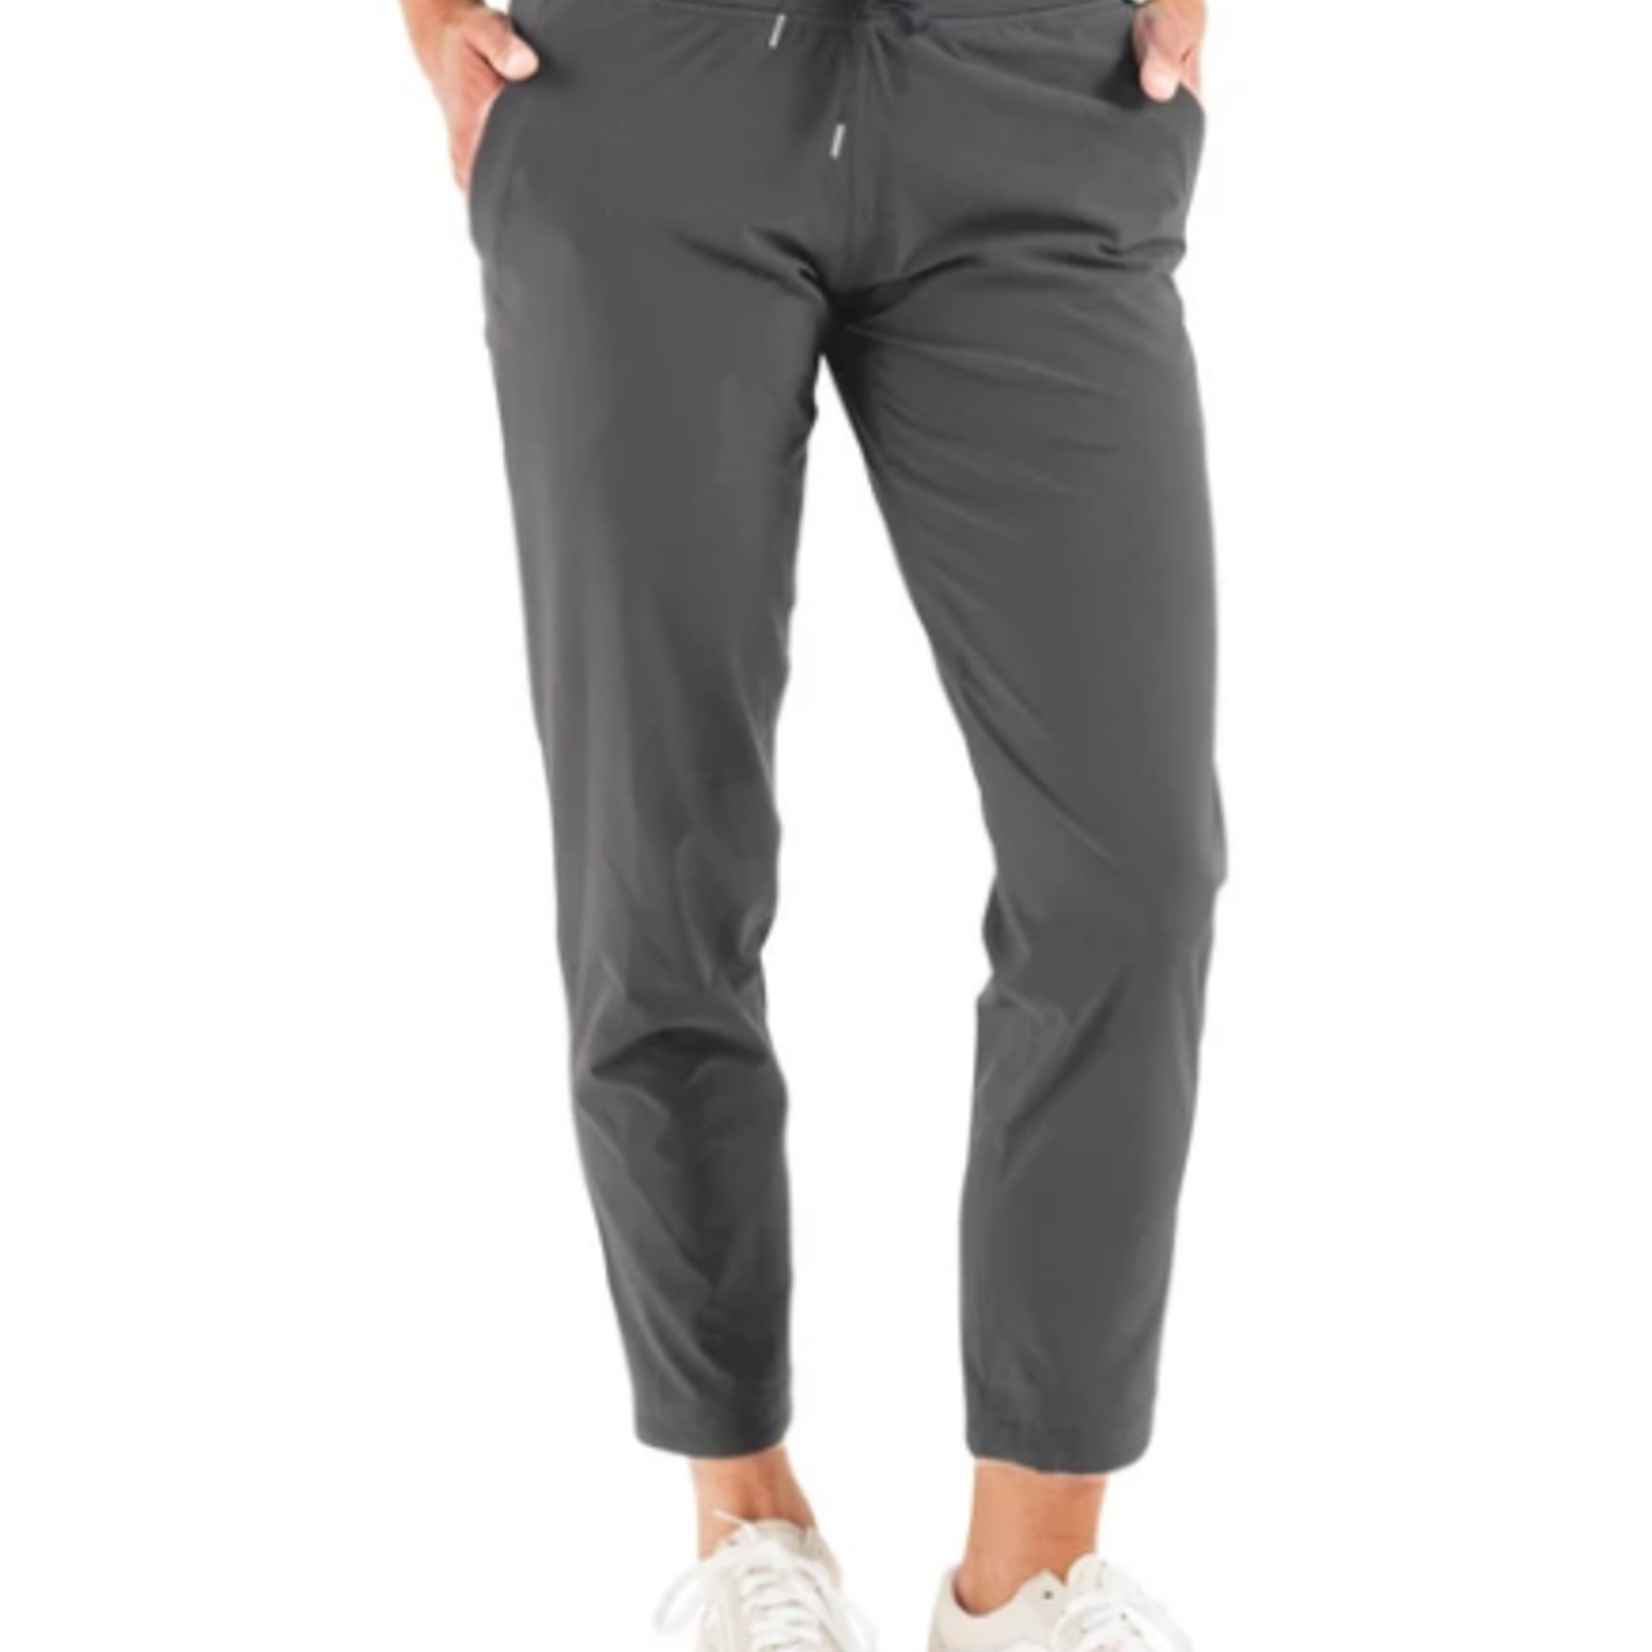 Free Fly Free Fly W's Breeze Cropped Pant